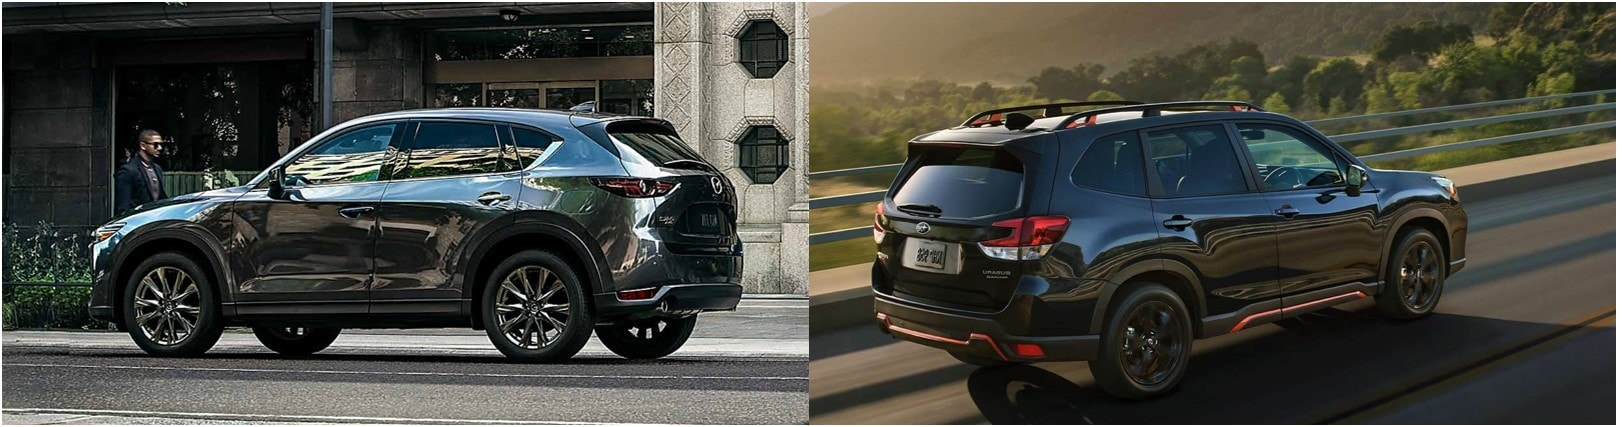 a 2020 Mazda CX-9 driving with a 2020 Subaru Forester